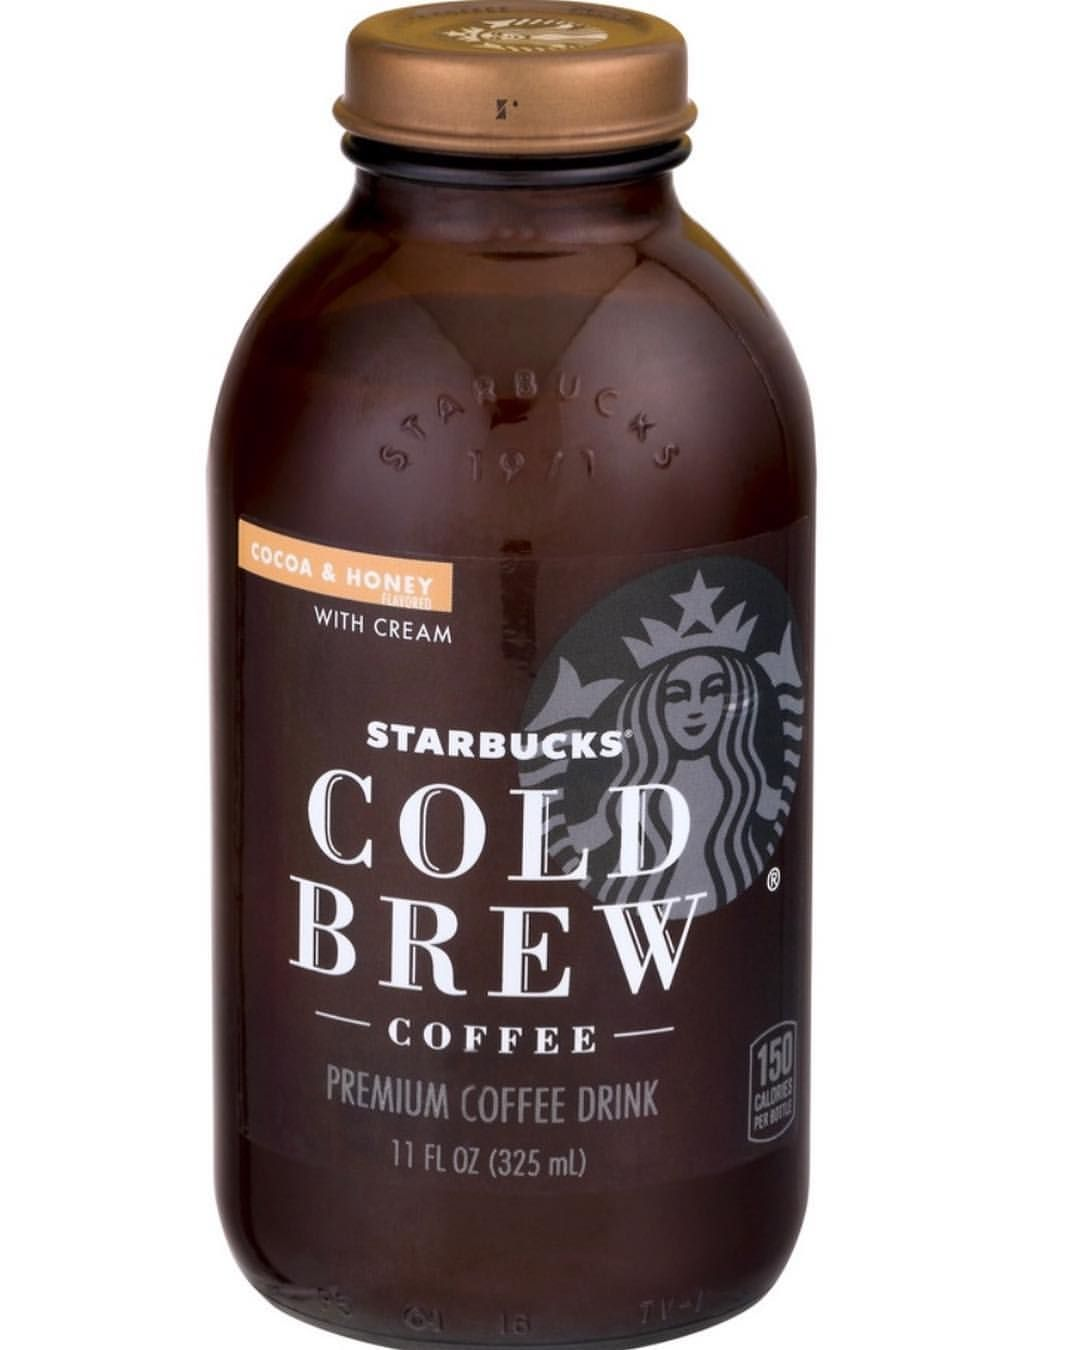 New review up for the starbucks Cold Brew Coffee Cocoa